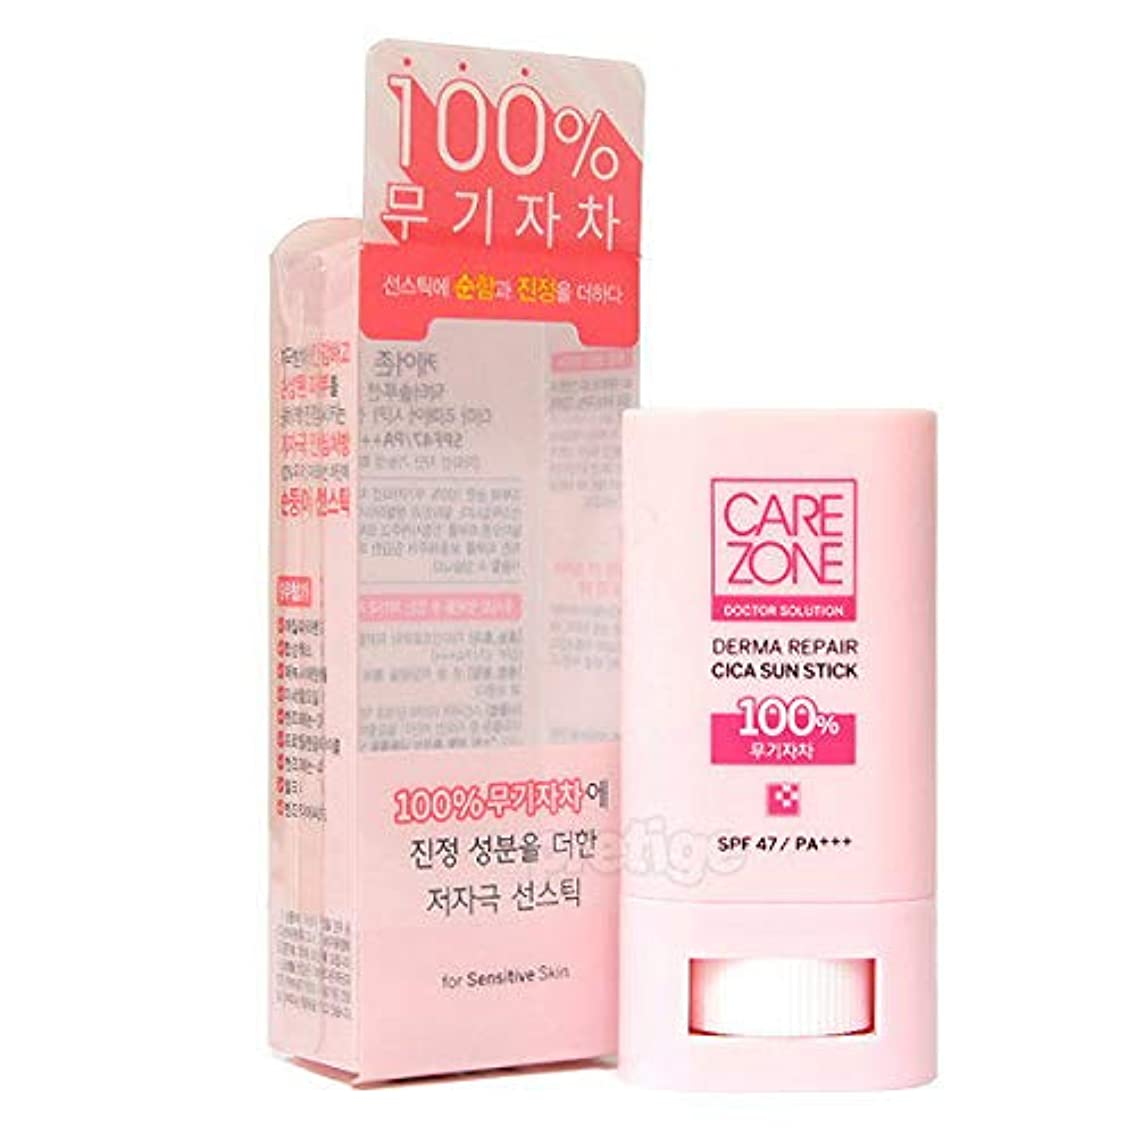 余剰寺院イブニングCAREZONE ケアゾーン Doctor Solution Derma Repair Cica Sun Stick サンスティック (20g) SPF47/PA+++ CARE ZONE